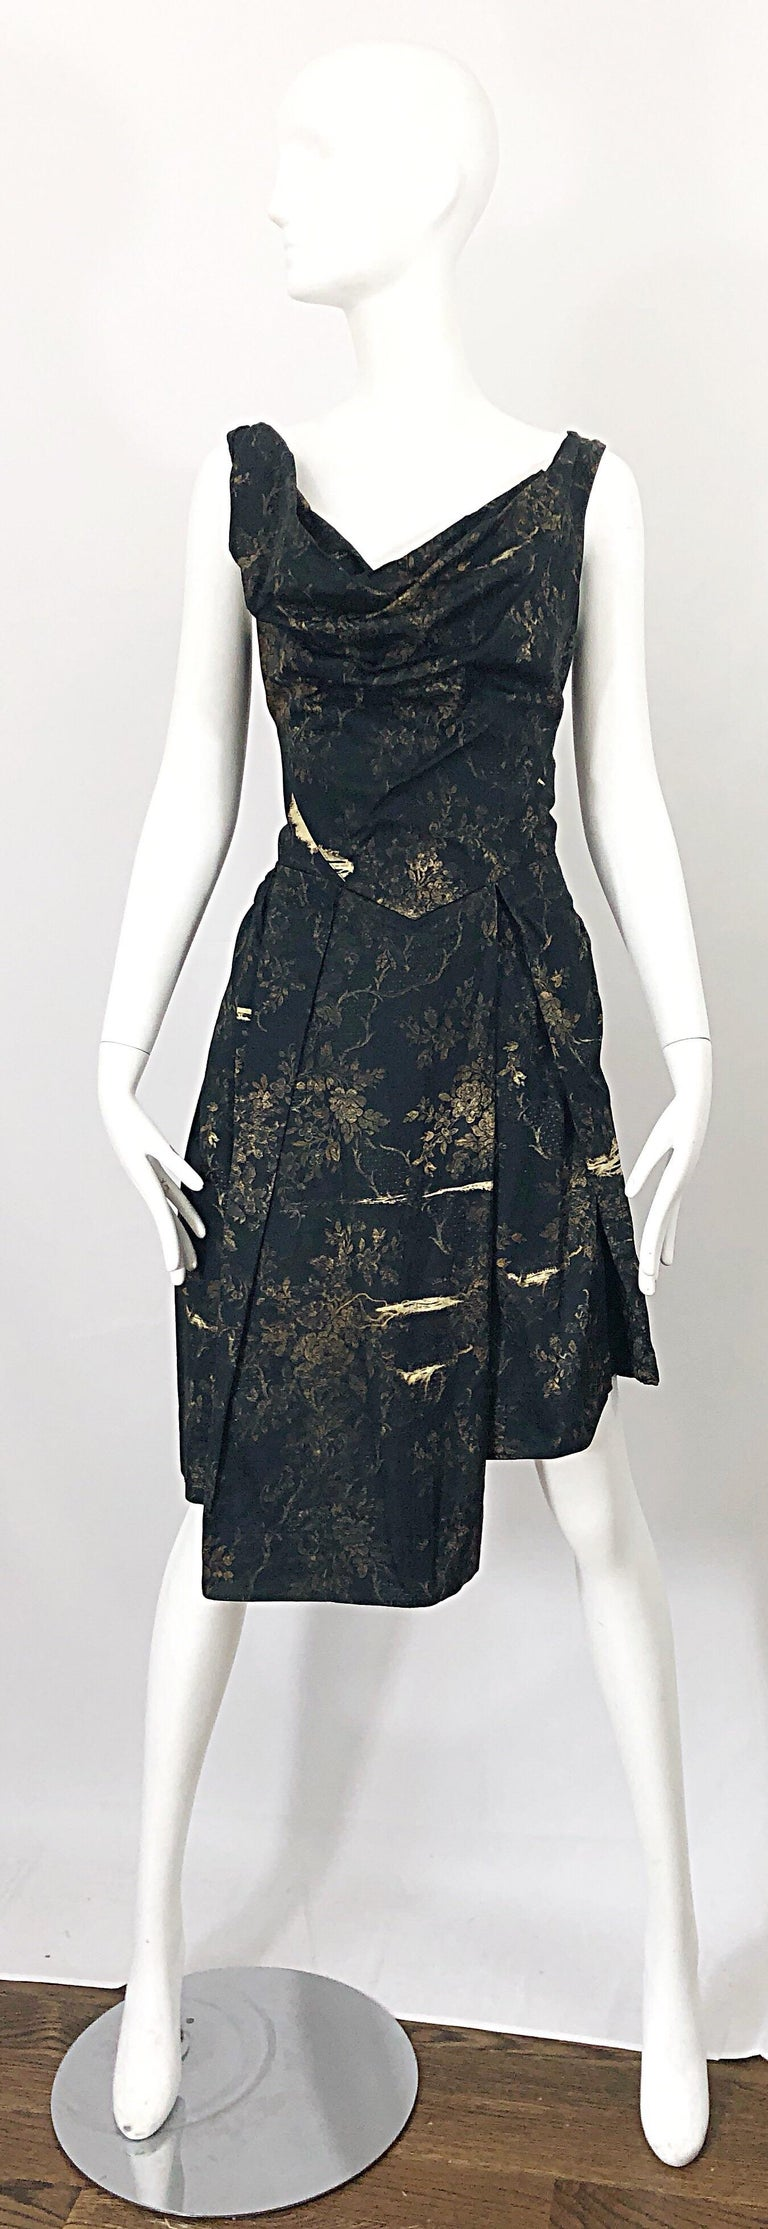 Avant Garde early 2000s  VIVENNE WESTWOOD black and brown flower print asymmetrical dress! Features Westwood's signature draped bodice. Hi-Lo skirt. Hidden zipper up the back with hook-and-eye closure. POCKET at one side of the hip.  Can also be